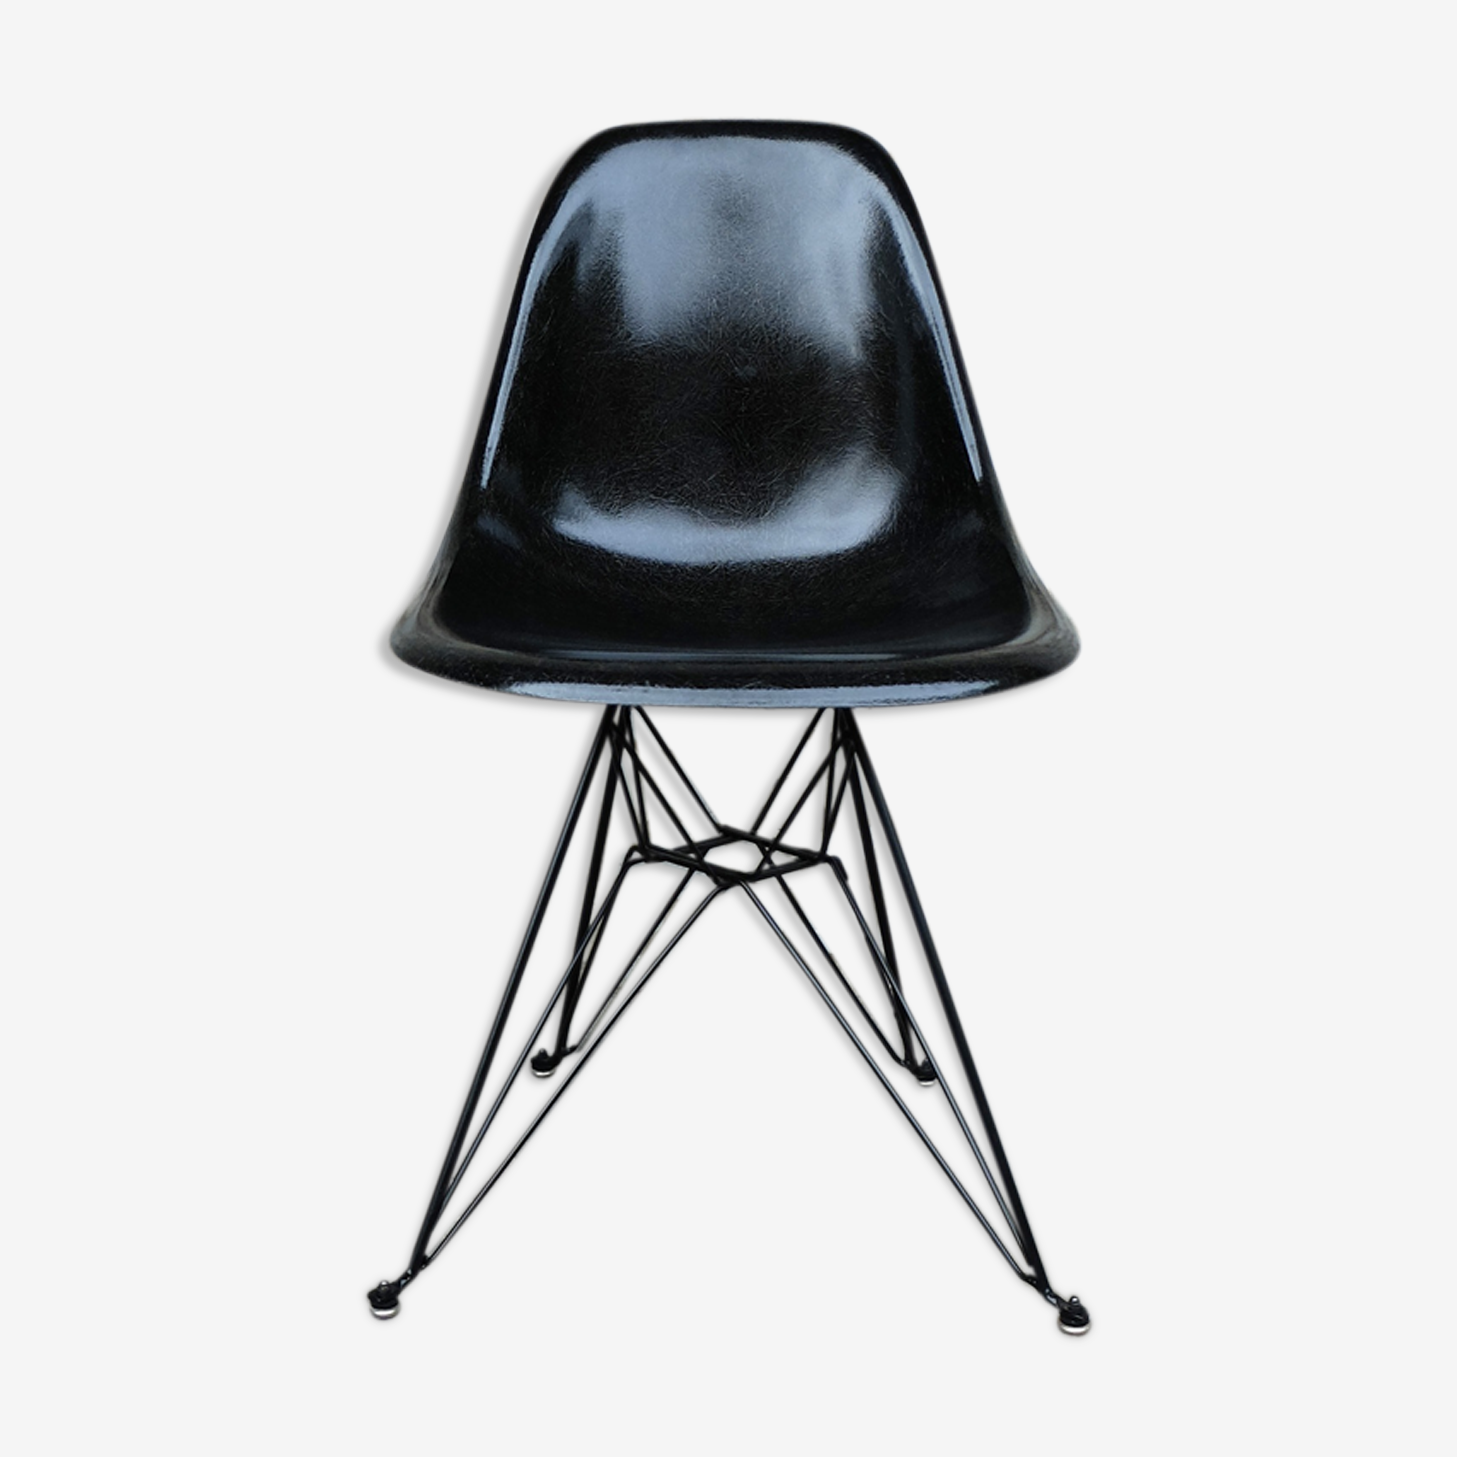 Chair by DSR Charles & Ray Eames for Herman Miller